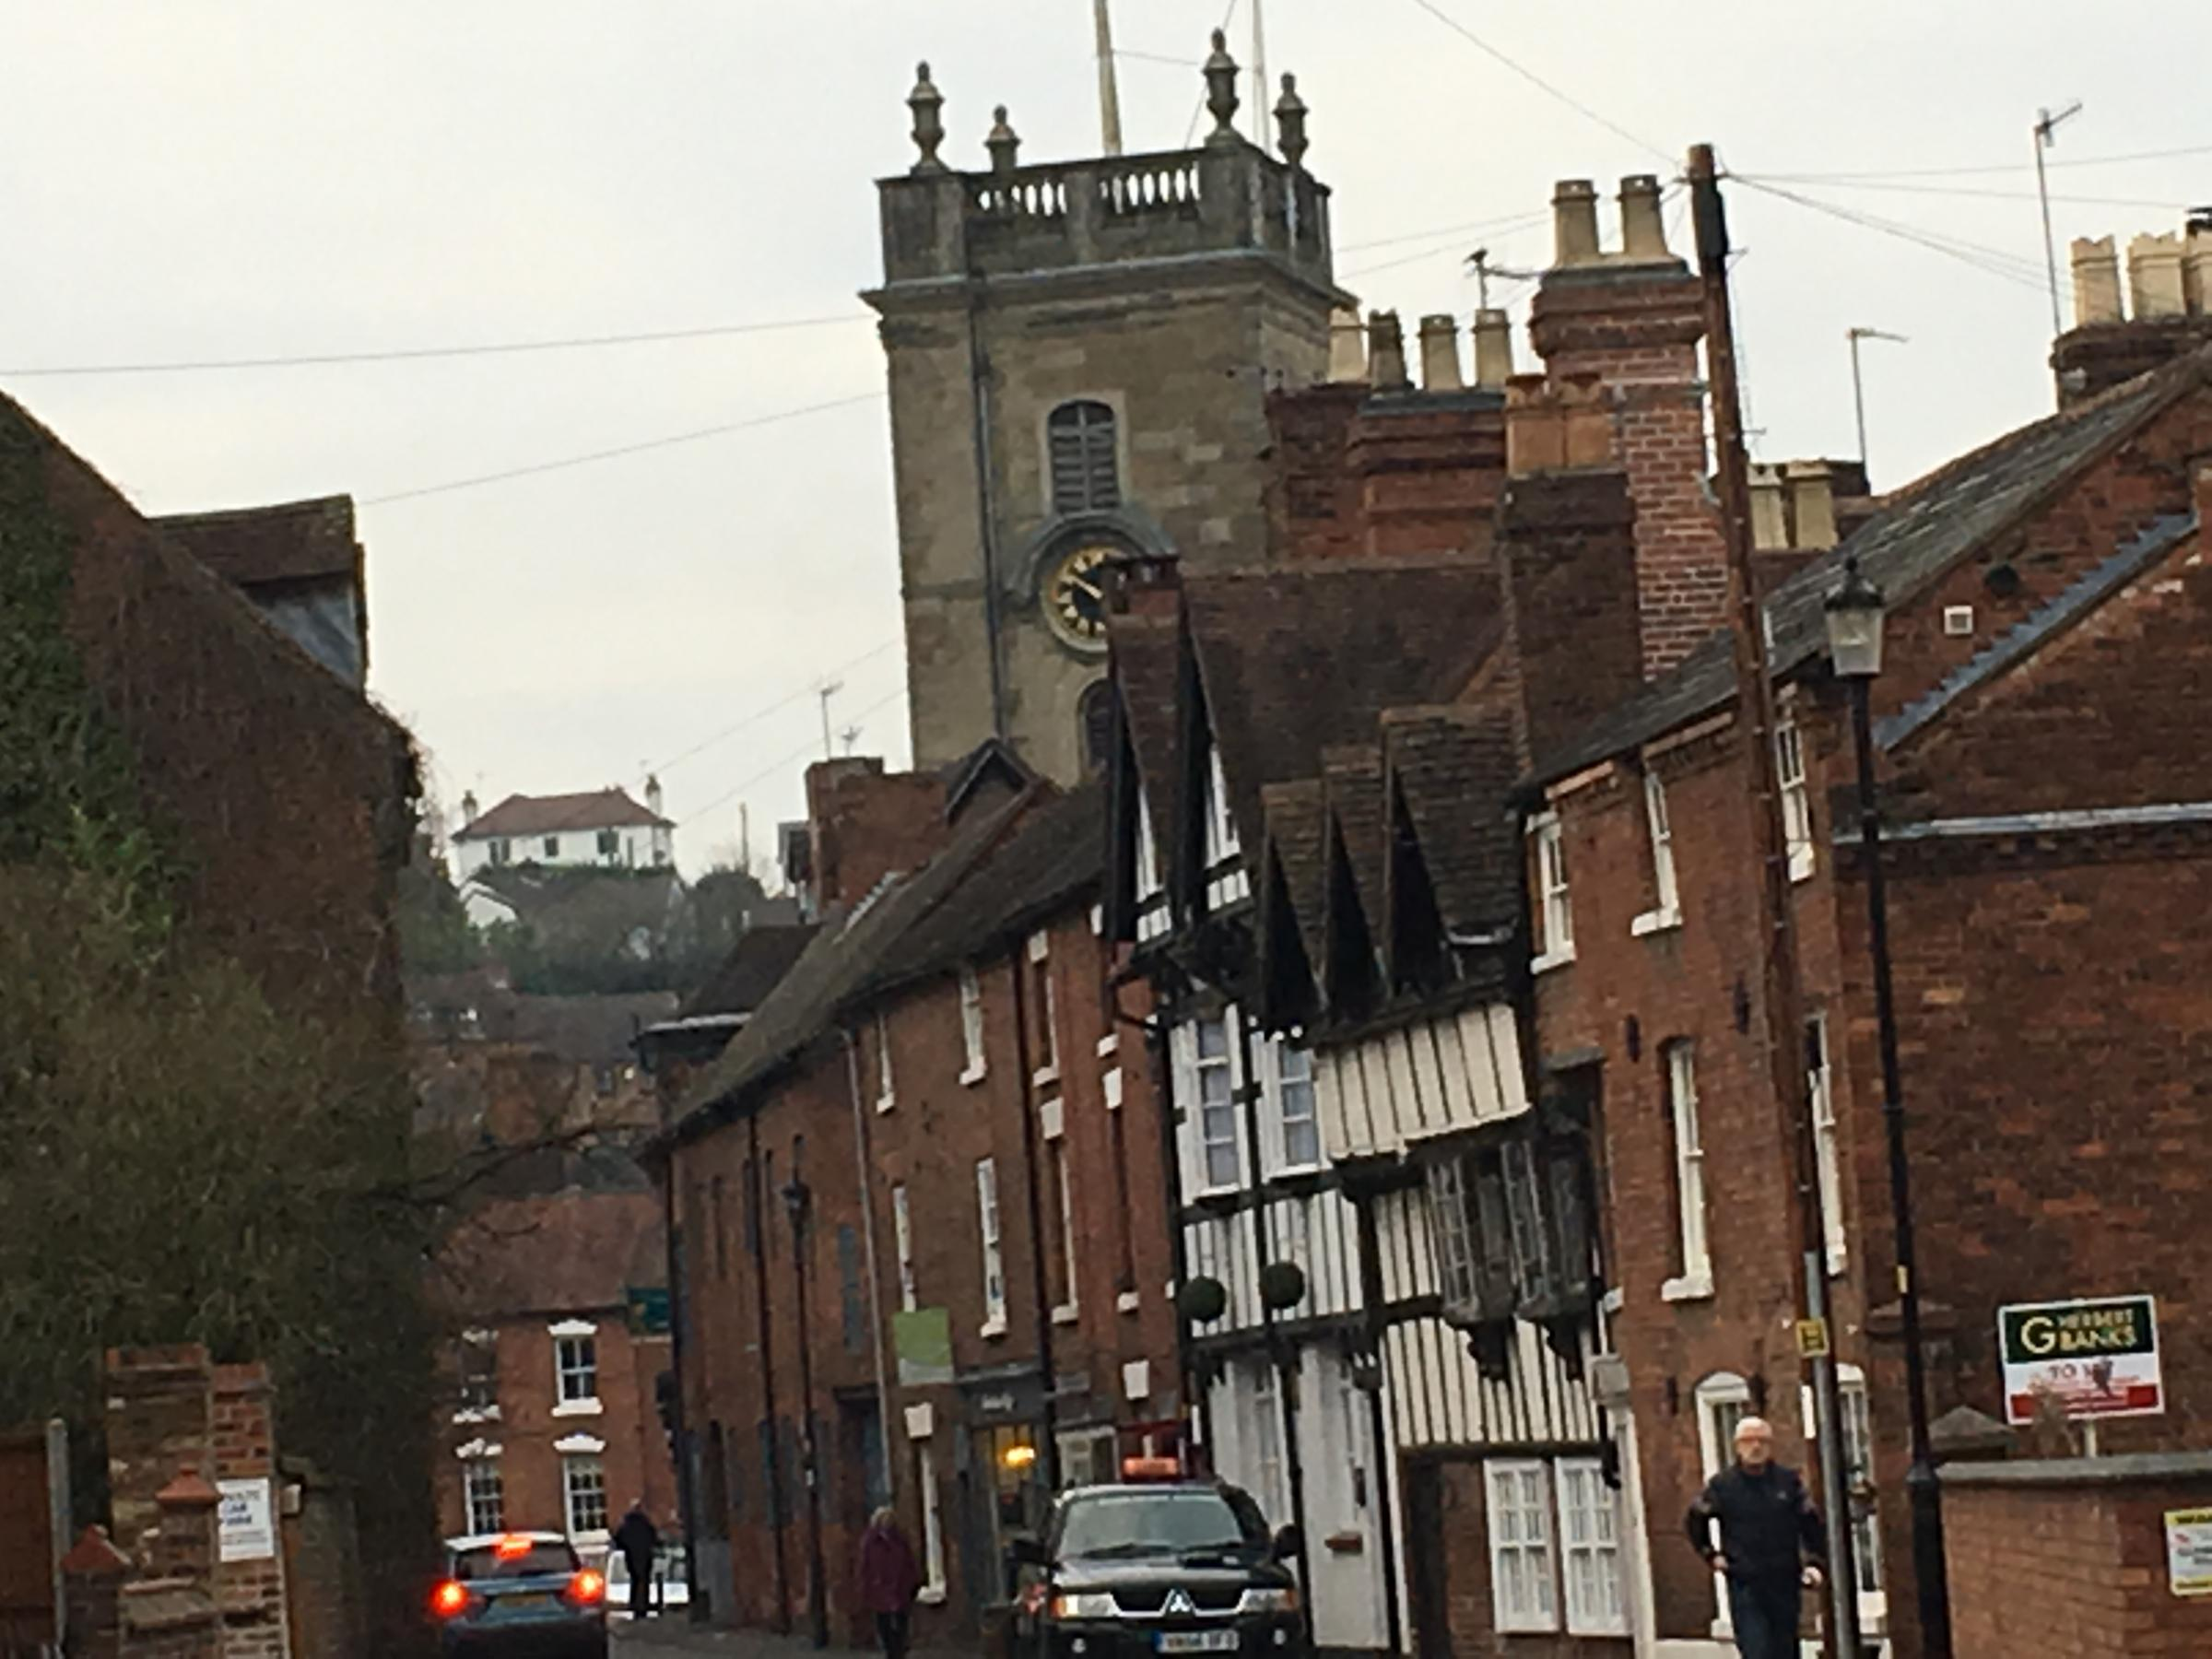 The History of Bewdley. Richard Perrins